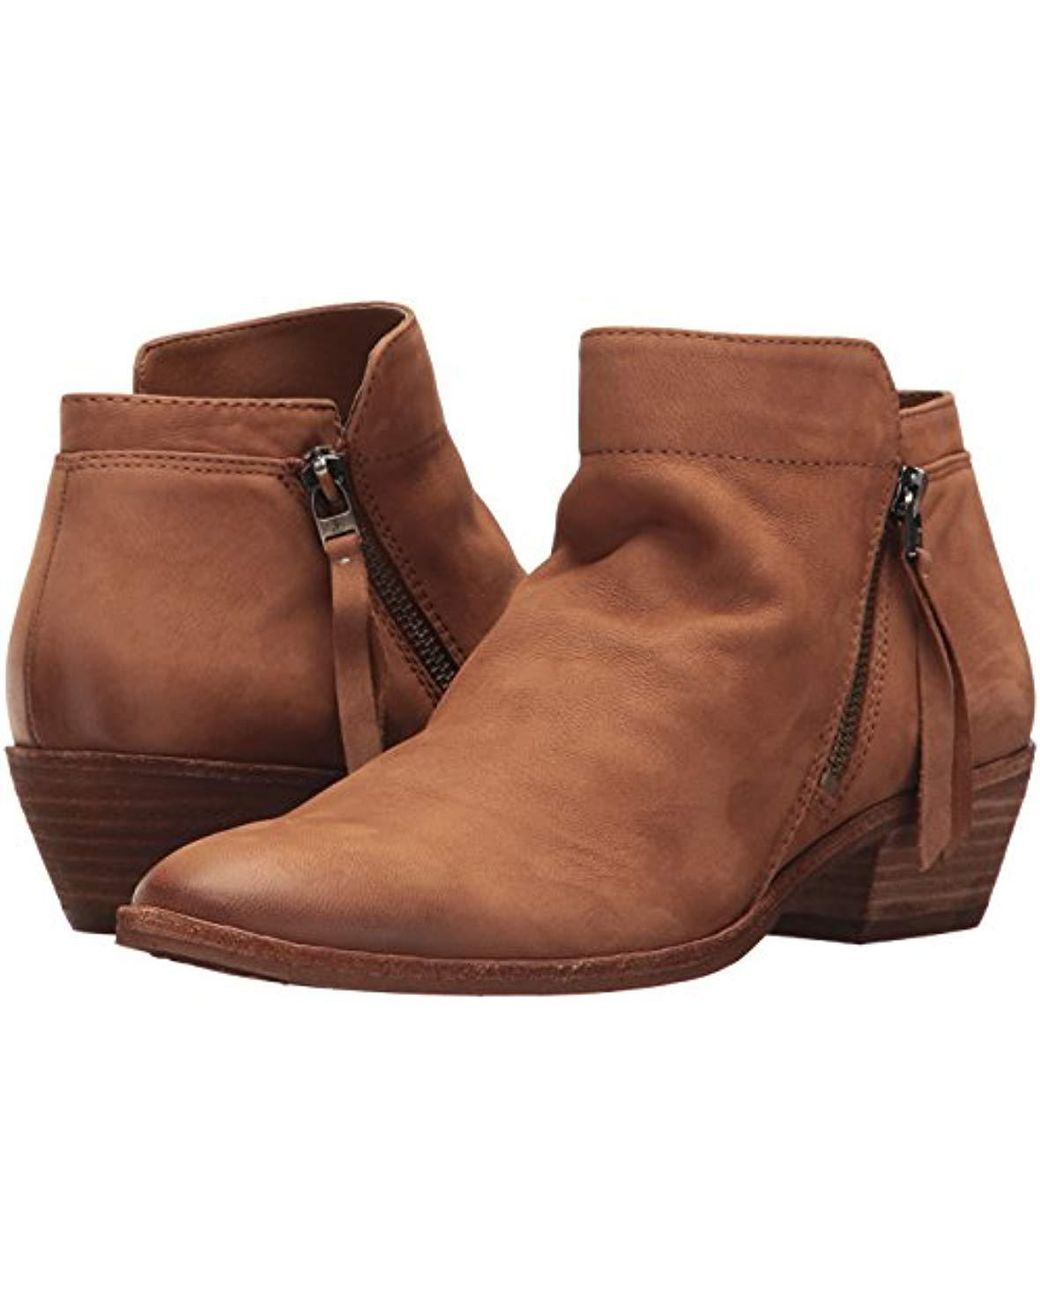 11efddac1 Lyst - Sam Edelman Packer Ankle Boot in Brown - Save 1%